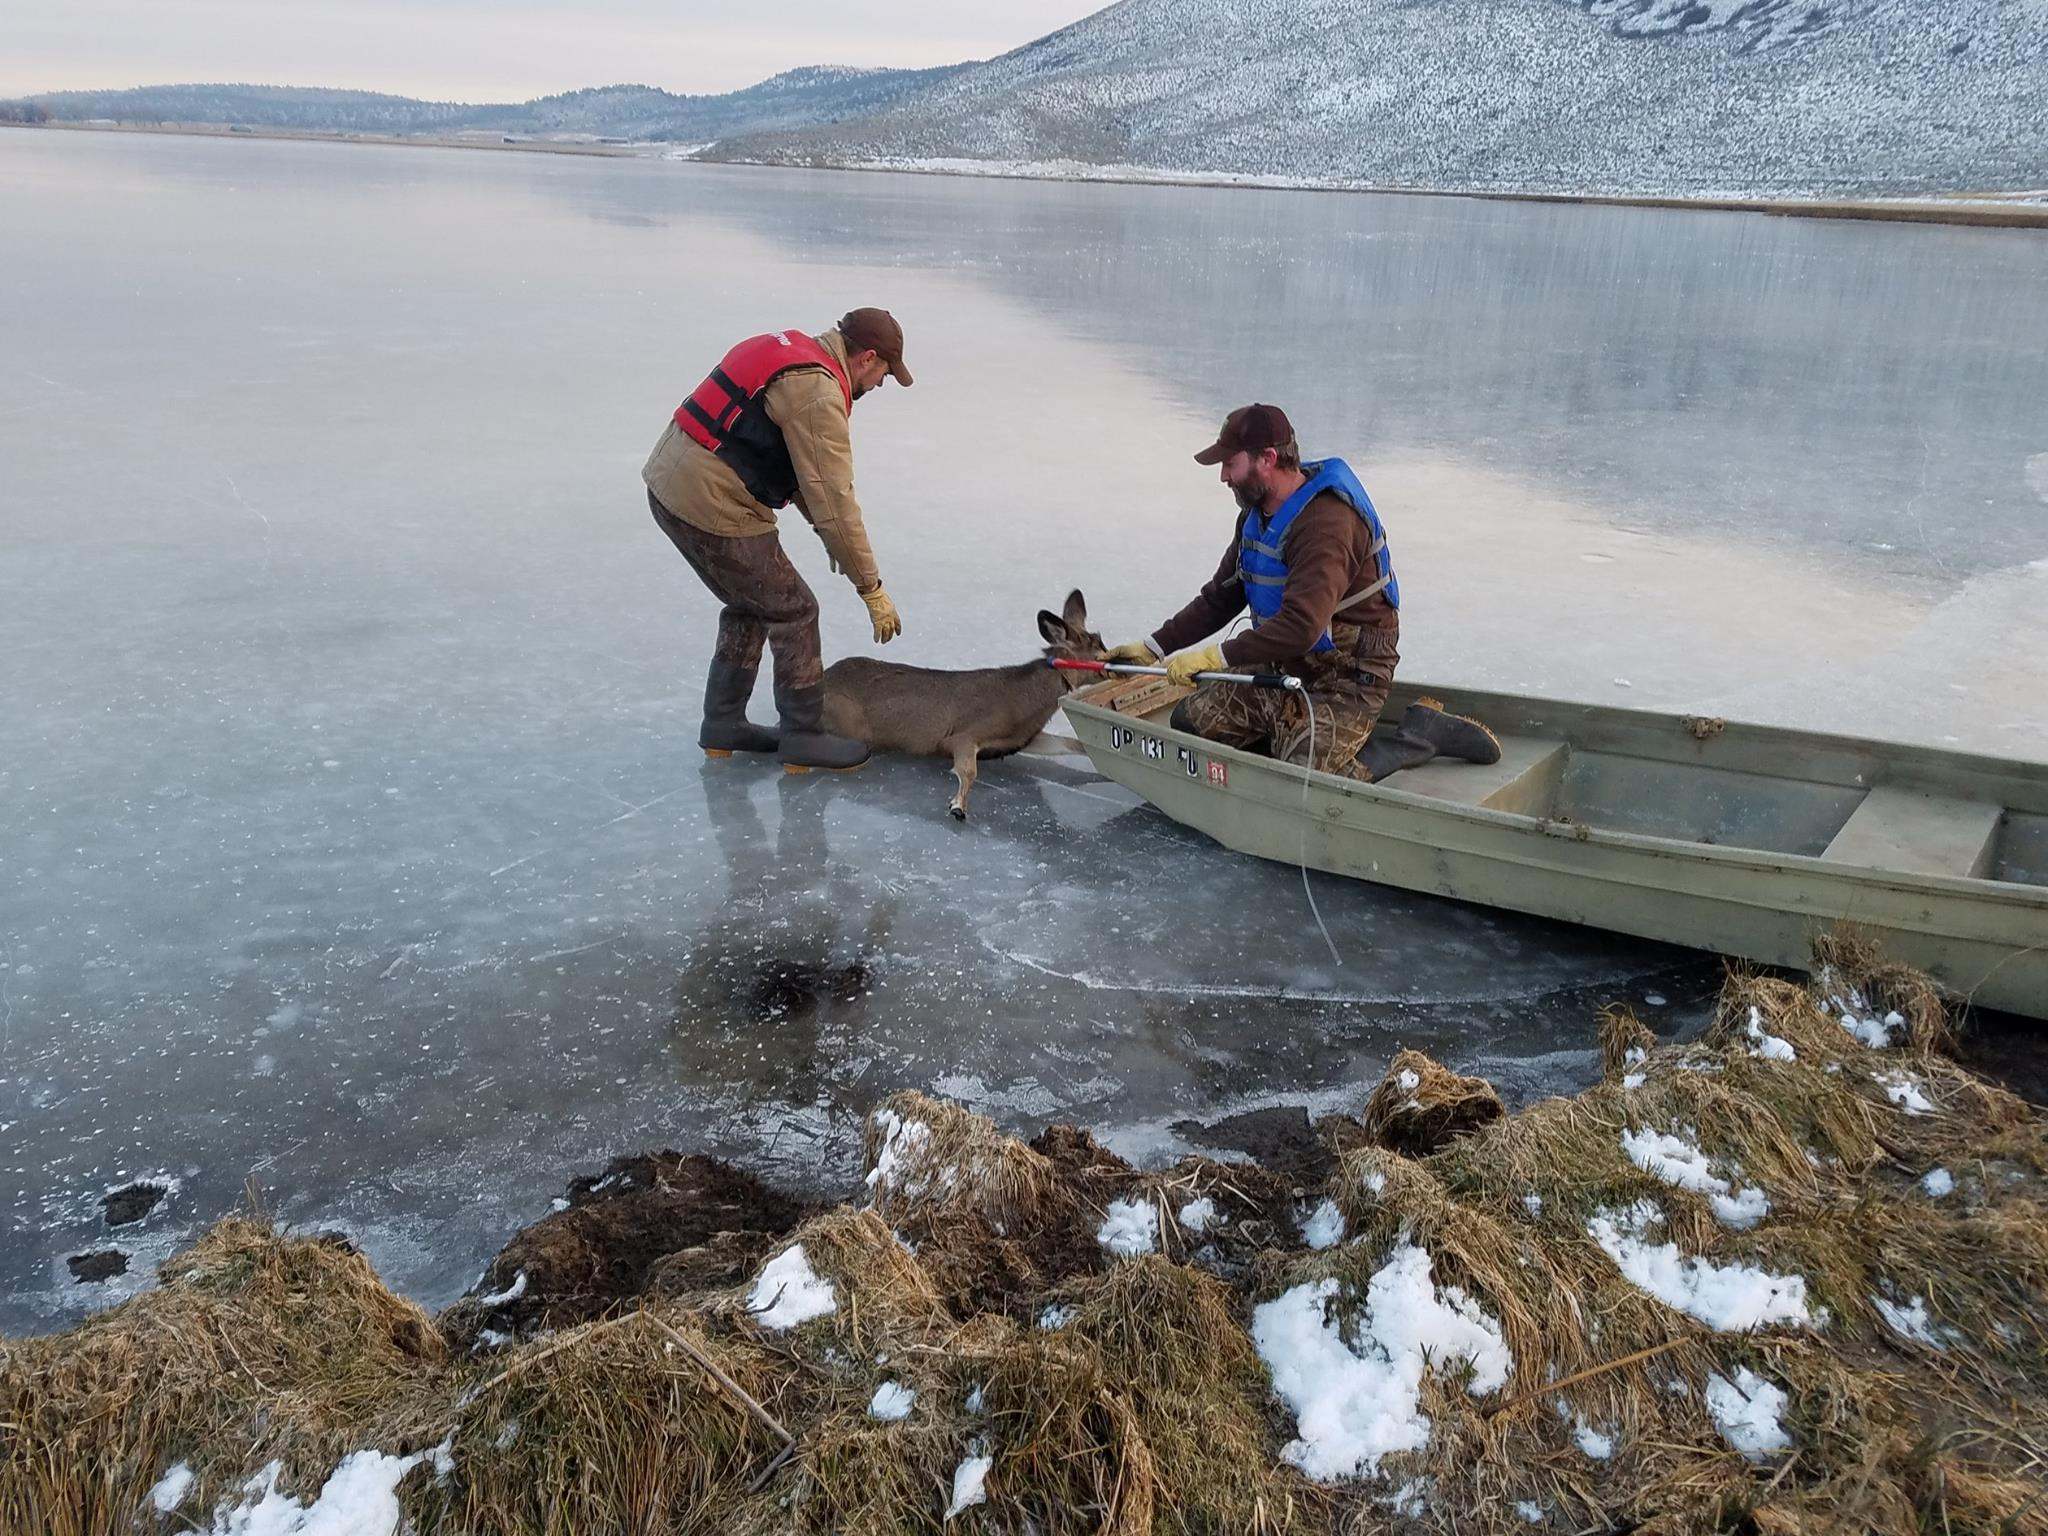 Oregon State Police and Oregon Department of Fish and Wildlife rescue a stranded deer on Spring Lake in Klamath County. (Oregon State Police)